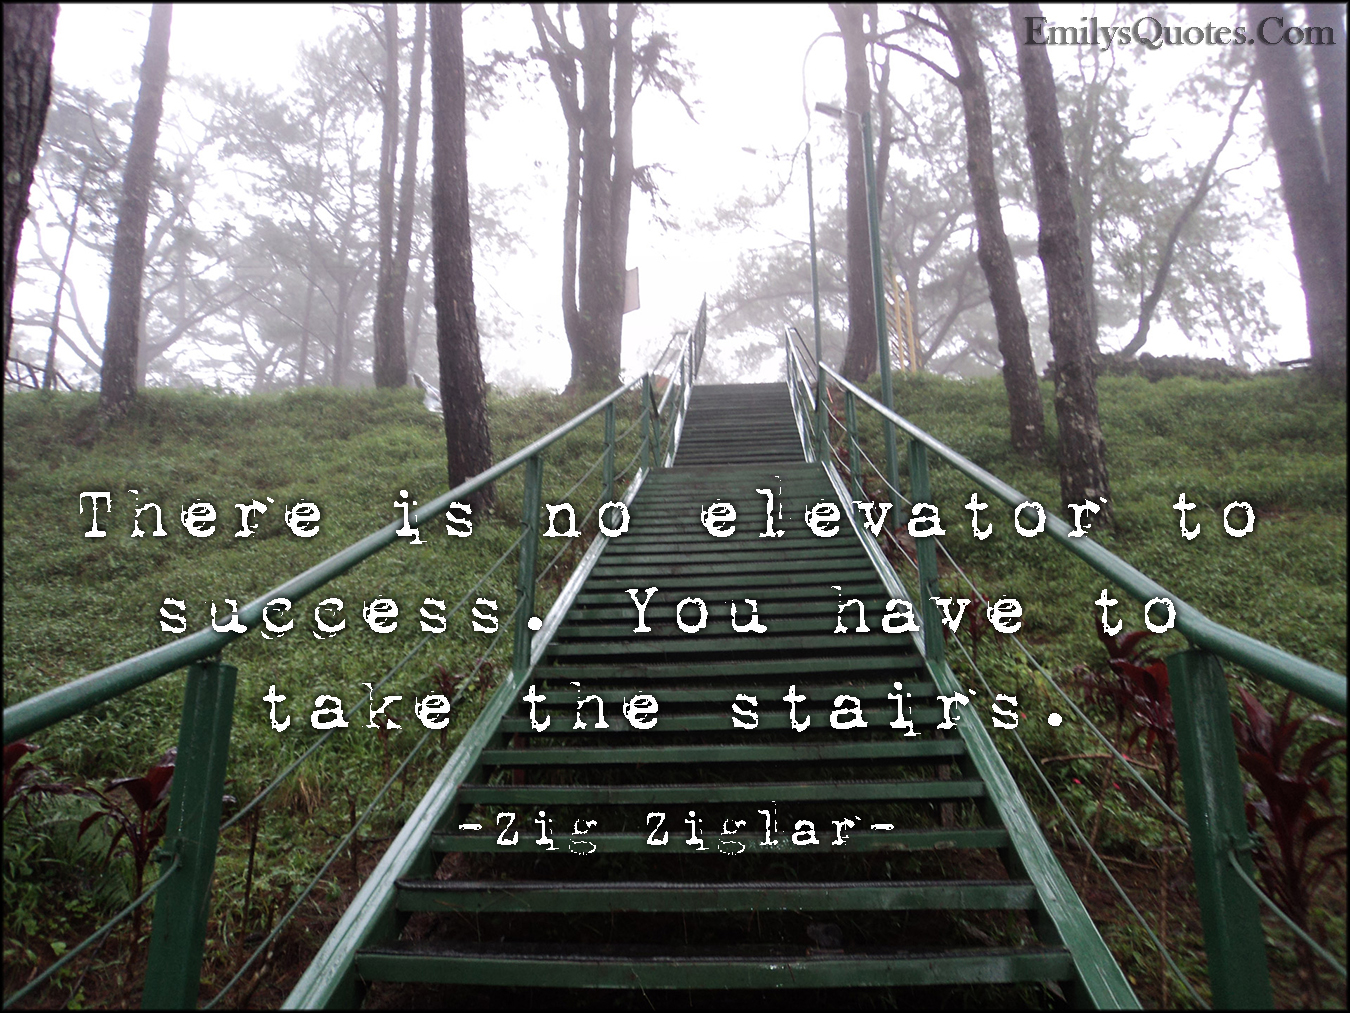 EmilysQuotes.Com - elevator, success, stairs, inspirational, life, attitude, encouraging, Zig Ziglar